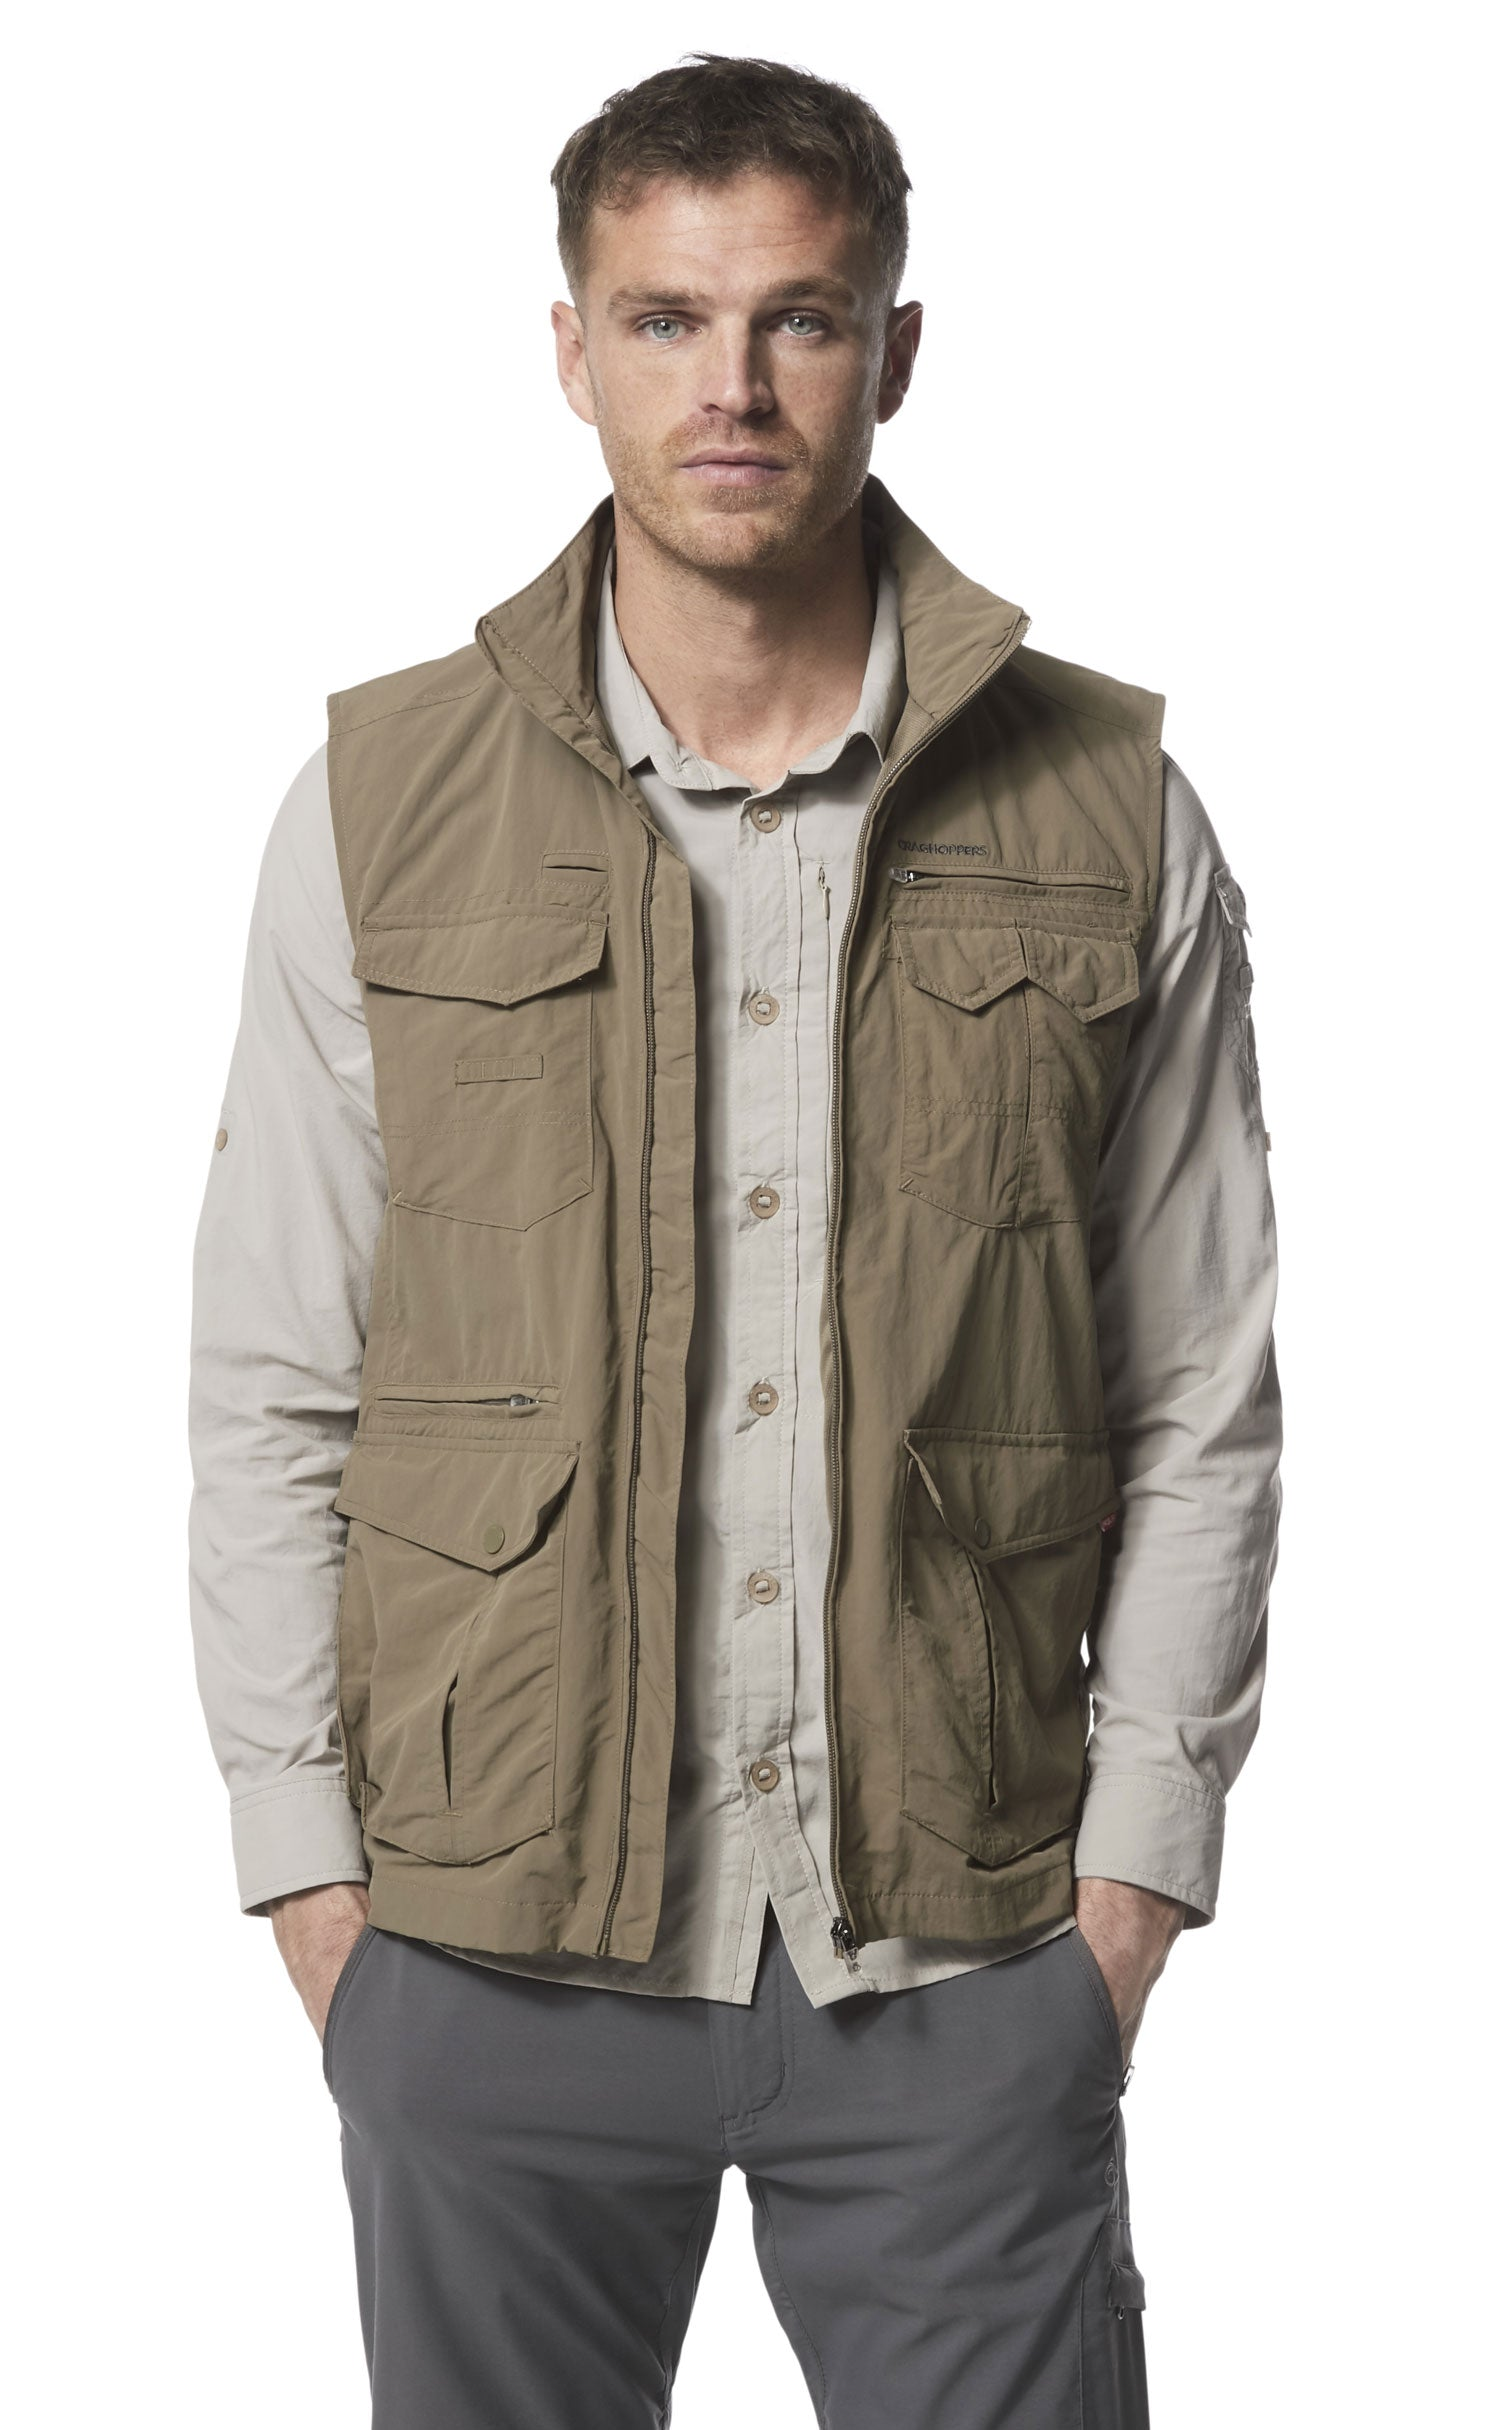 Adventure II Multi-pocket Gilet by Craghoppers